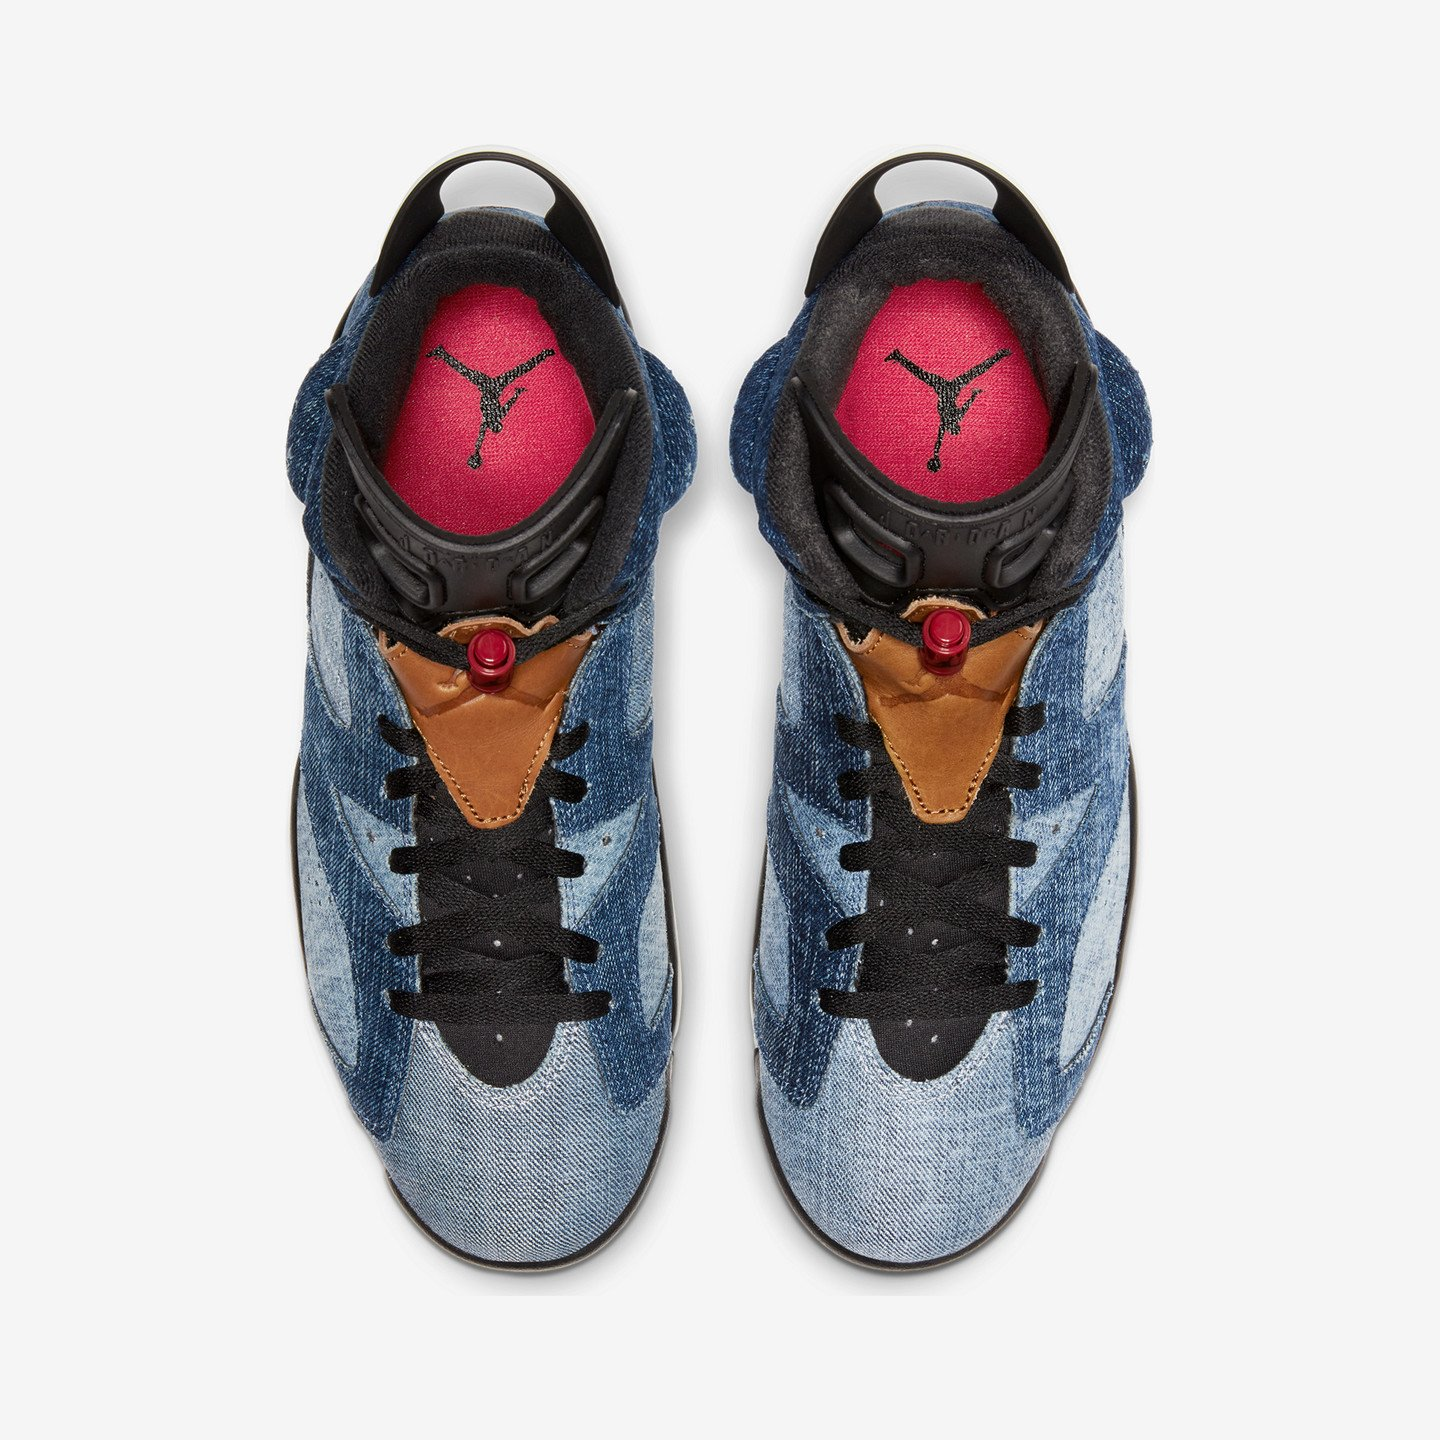 Jordan Air Jordan 6 Retro 'Washed Denim' Washed Denim / Black / Sail / Varsity Red CT5350-401